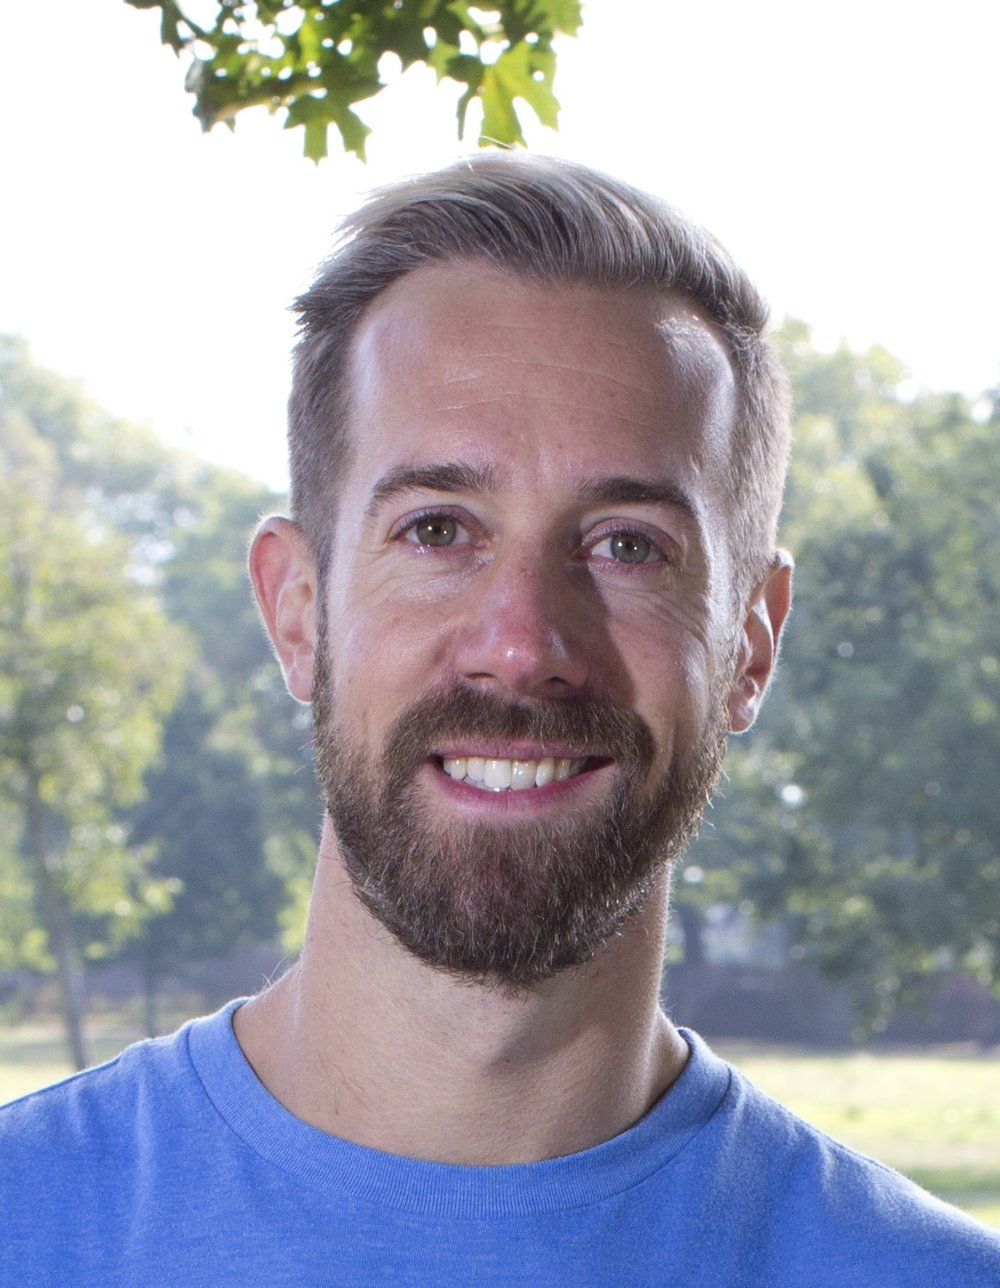 7. Matt Boyles - Founder, Fitter You and Wireless Fitness